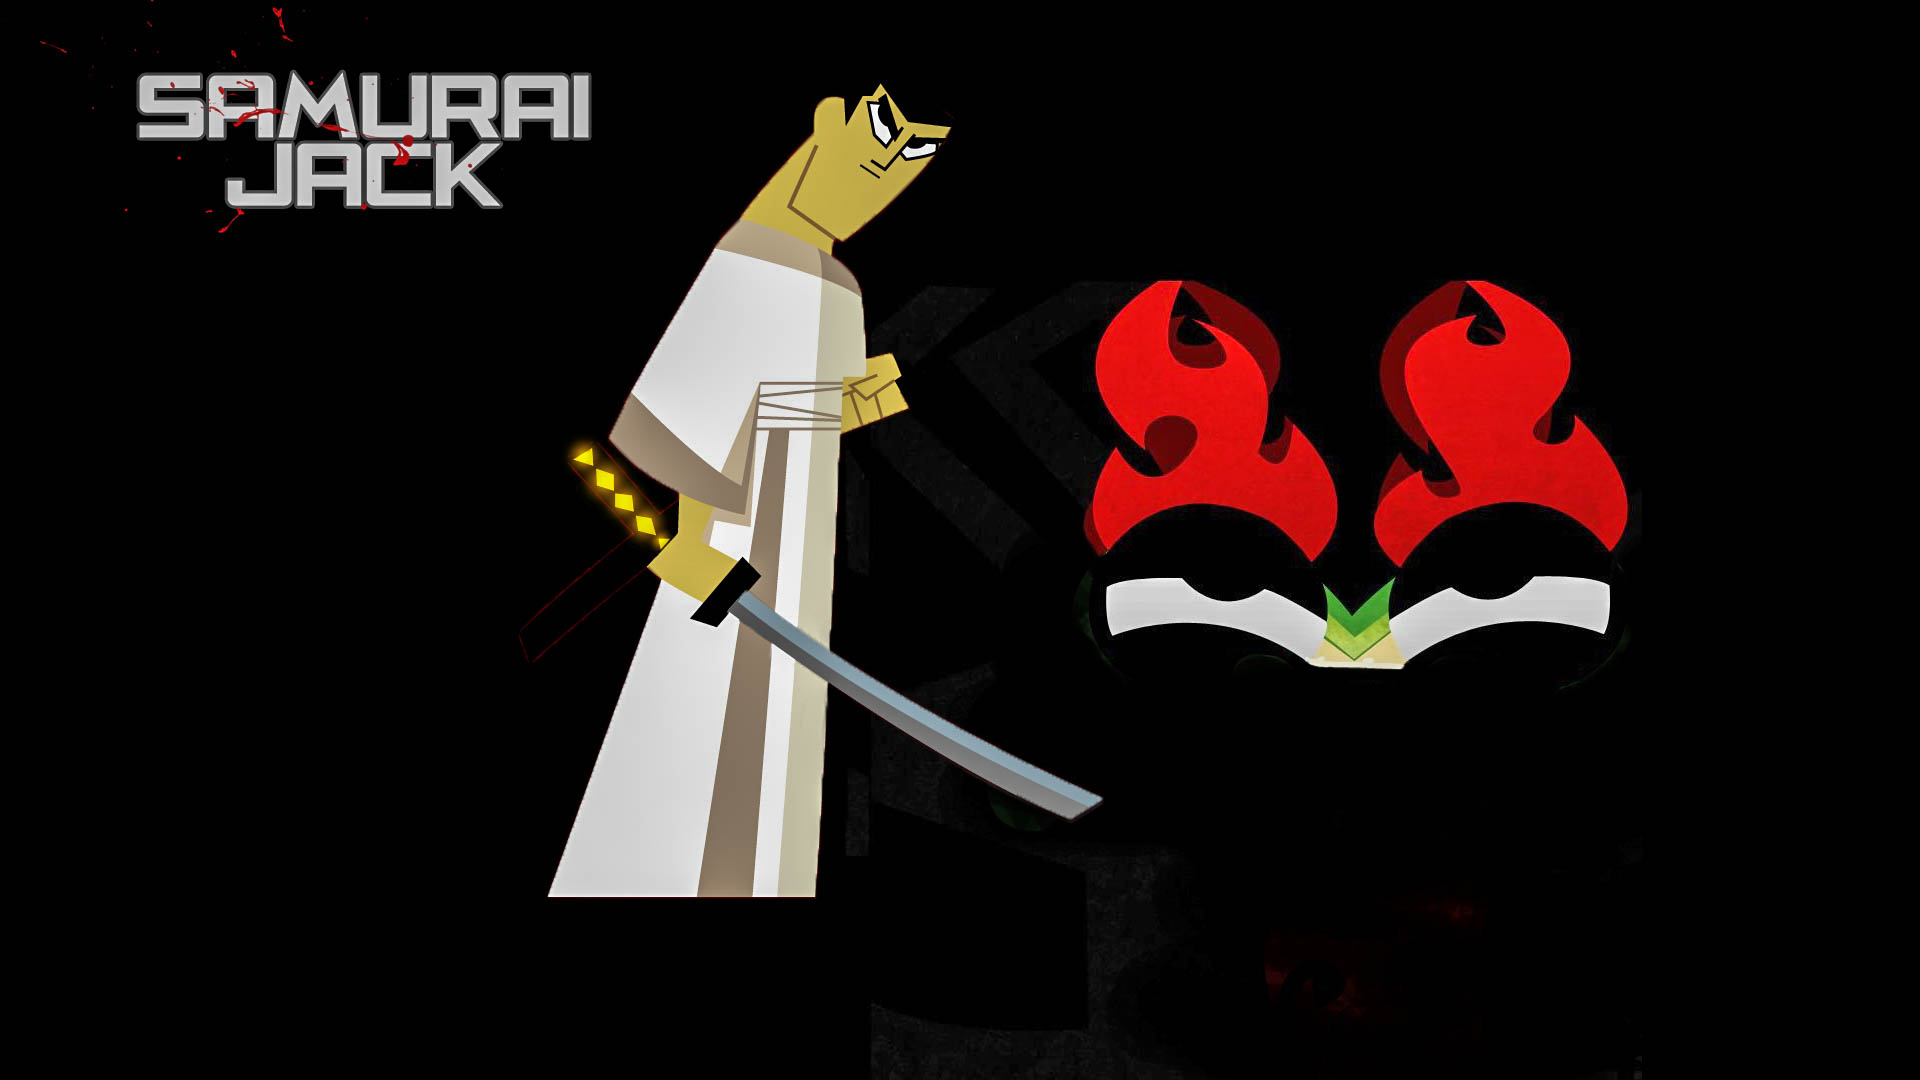 Samurai Jack Wallpapers Images In High Quality All Hd Wallpapers